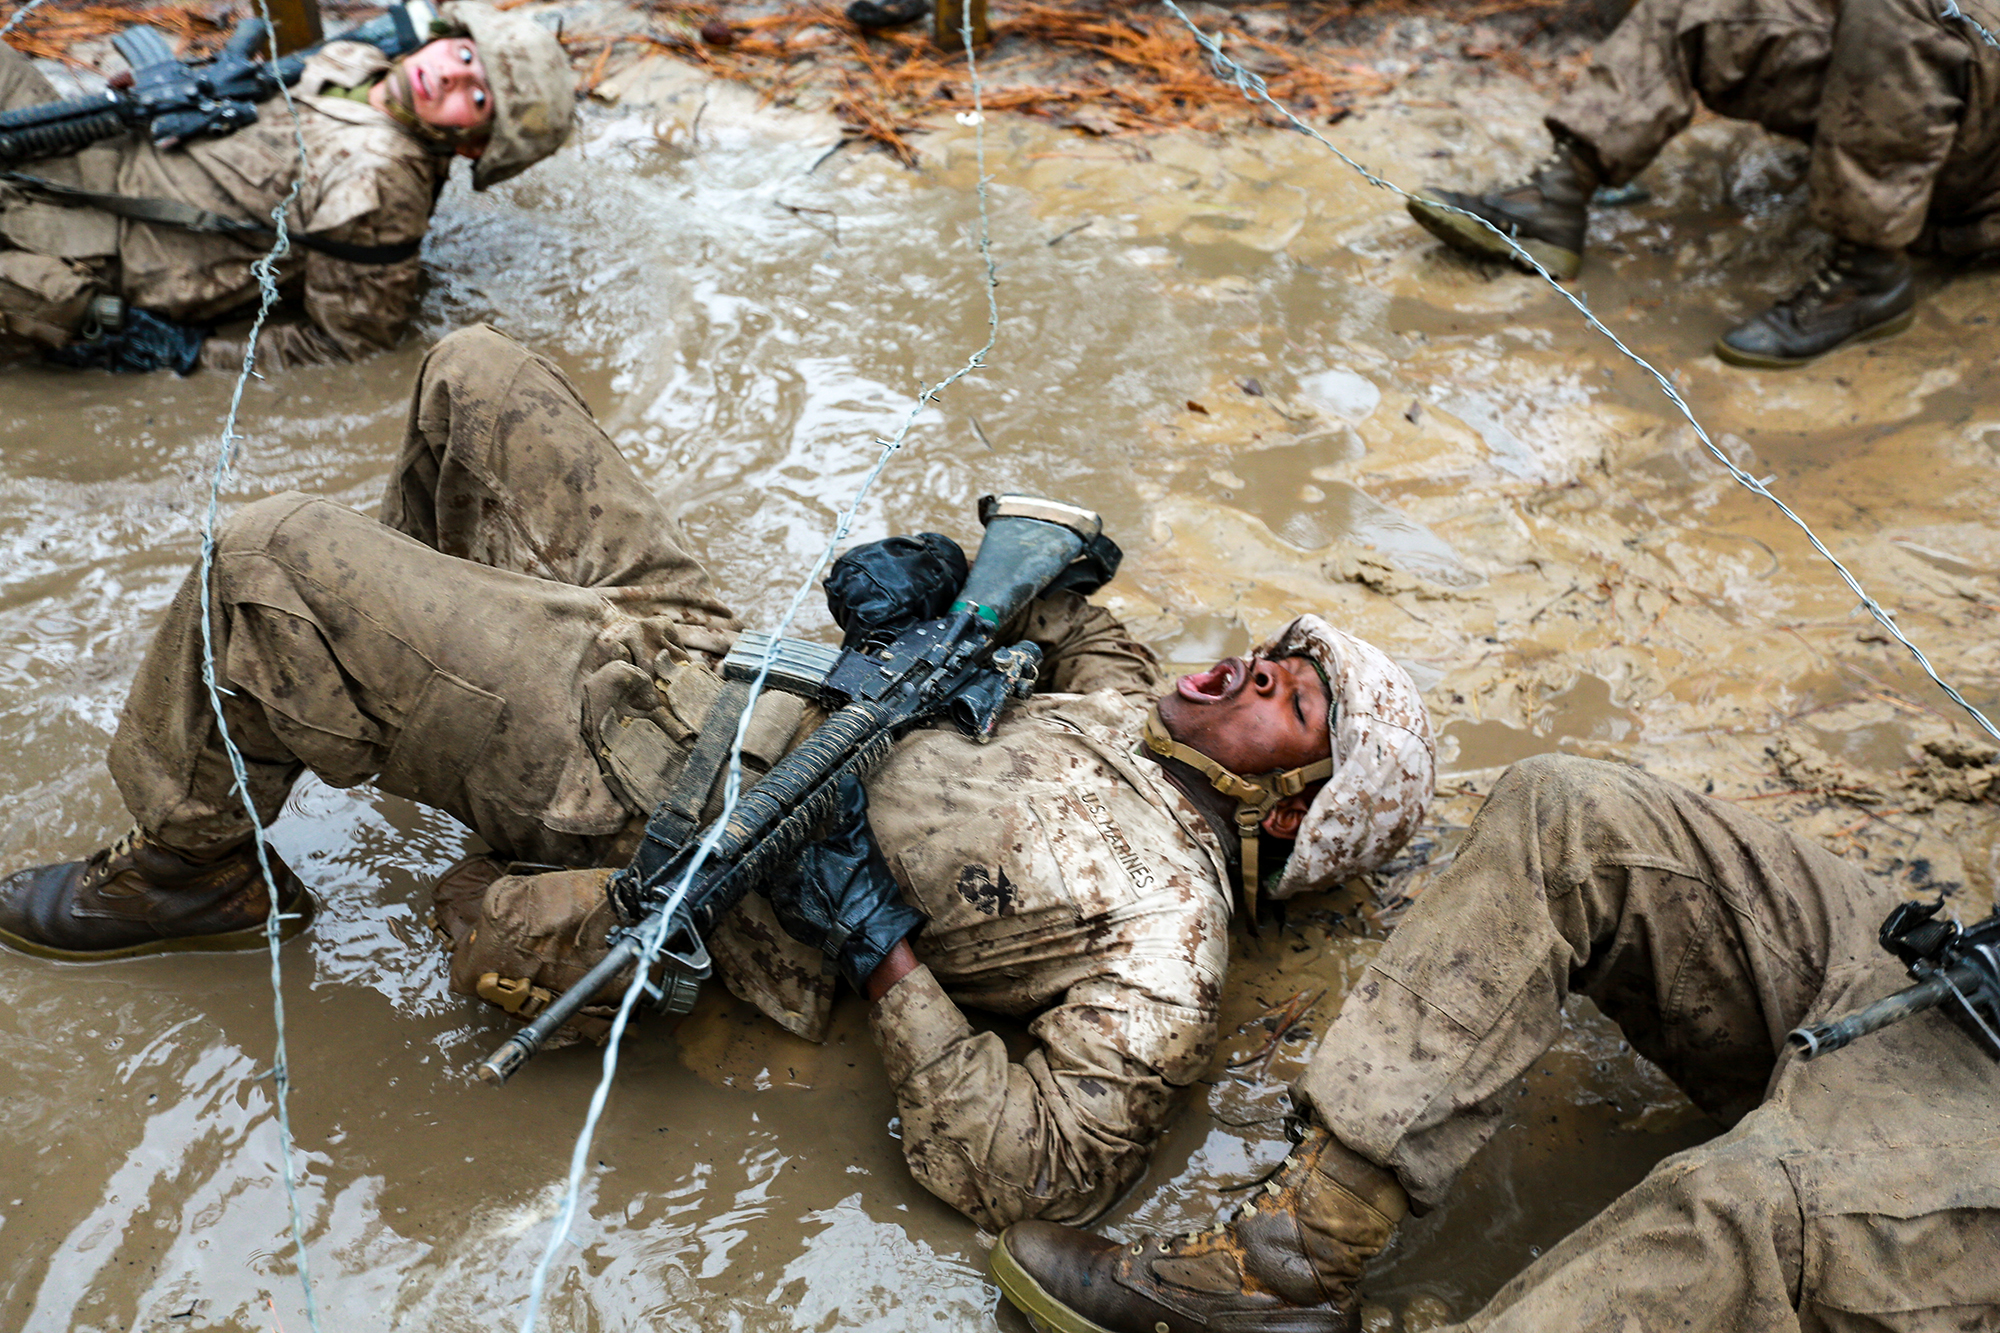 Recruits with Delta Company, 1st Recruit Training Battalion maneuver through mud and barbed wire during the Combat Endurance Course on Dec. 21, 2019, at Marine Corps Recruit Depot Parris Island, S.C. (Gunnery Sgt. Tyler Hlavac/Marine Corps)